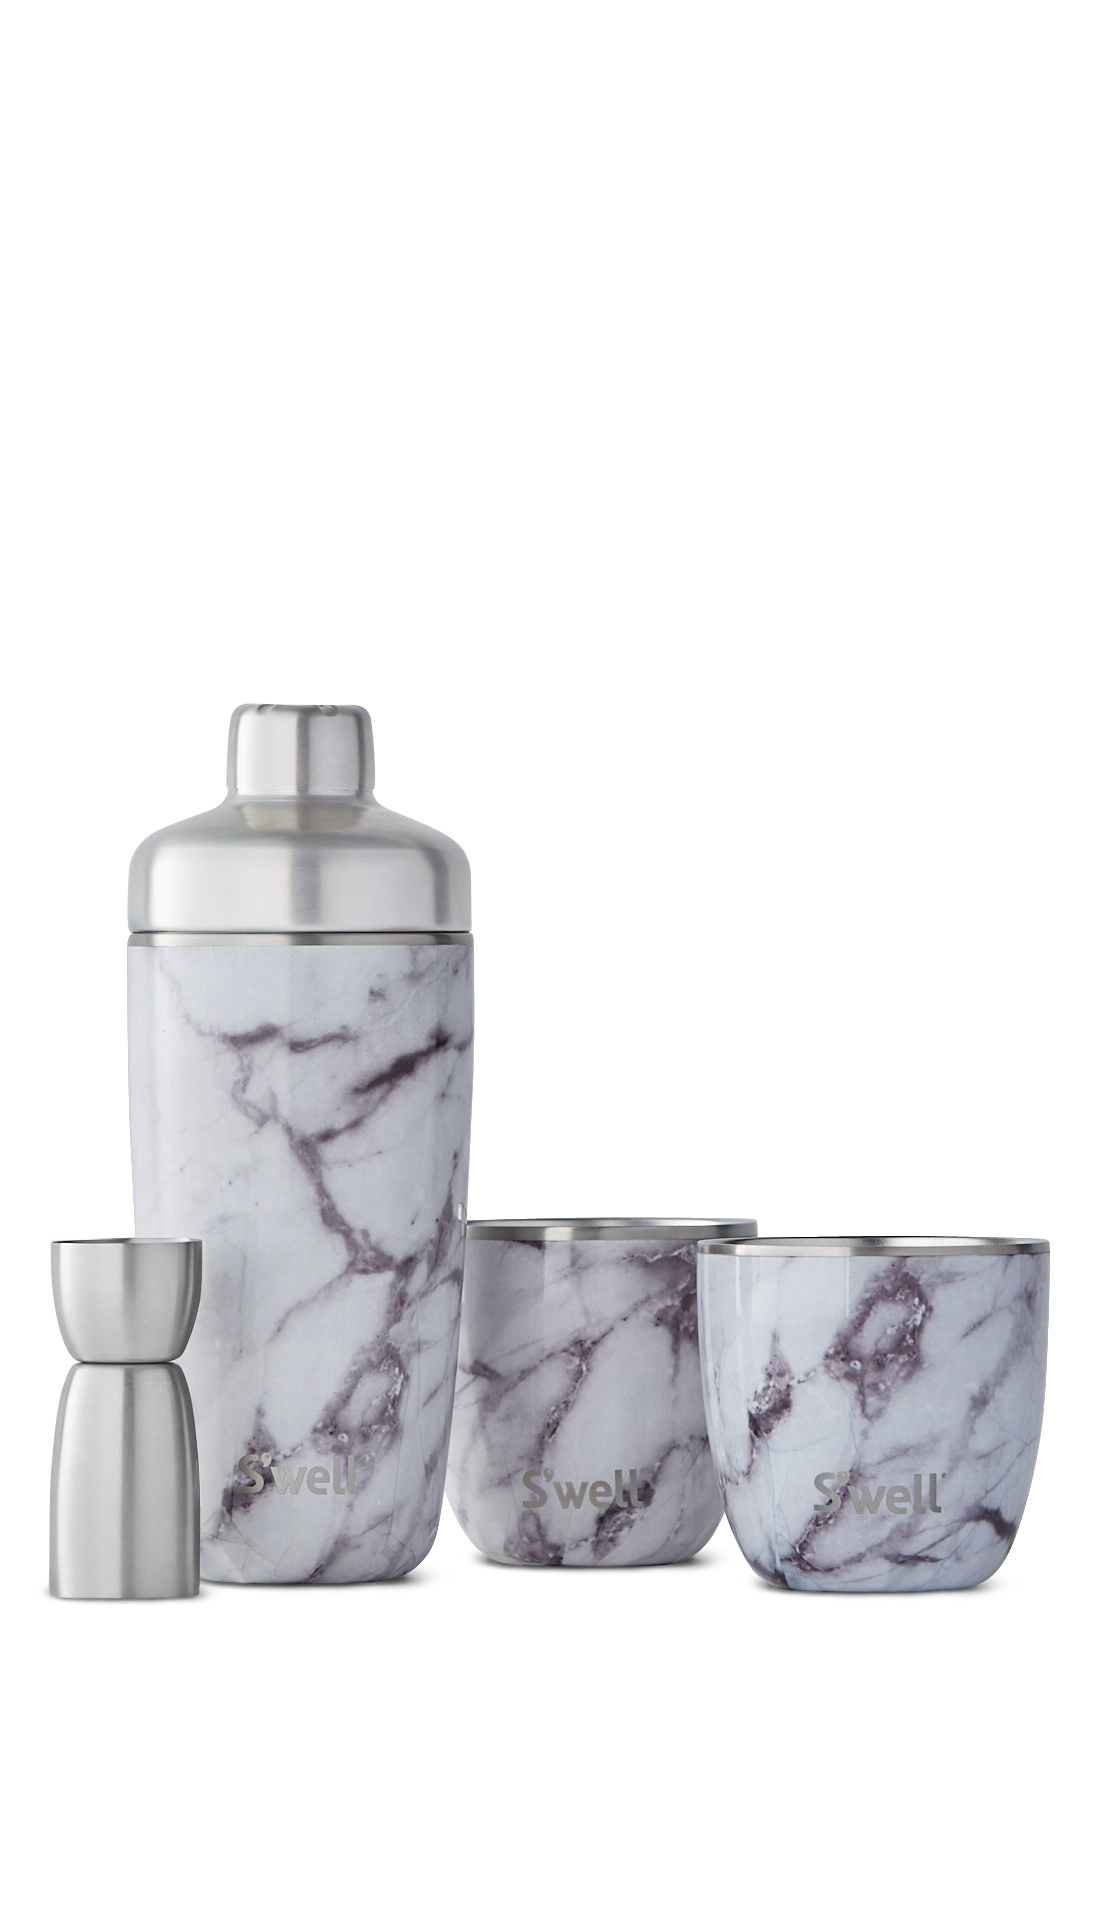 White Marble Cocktail Kit S Well 174 Bottle Official